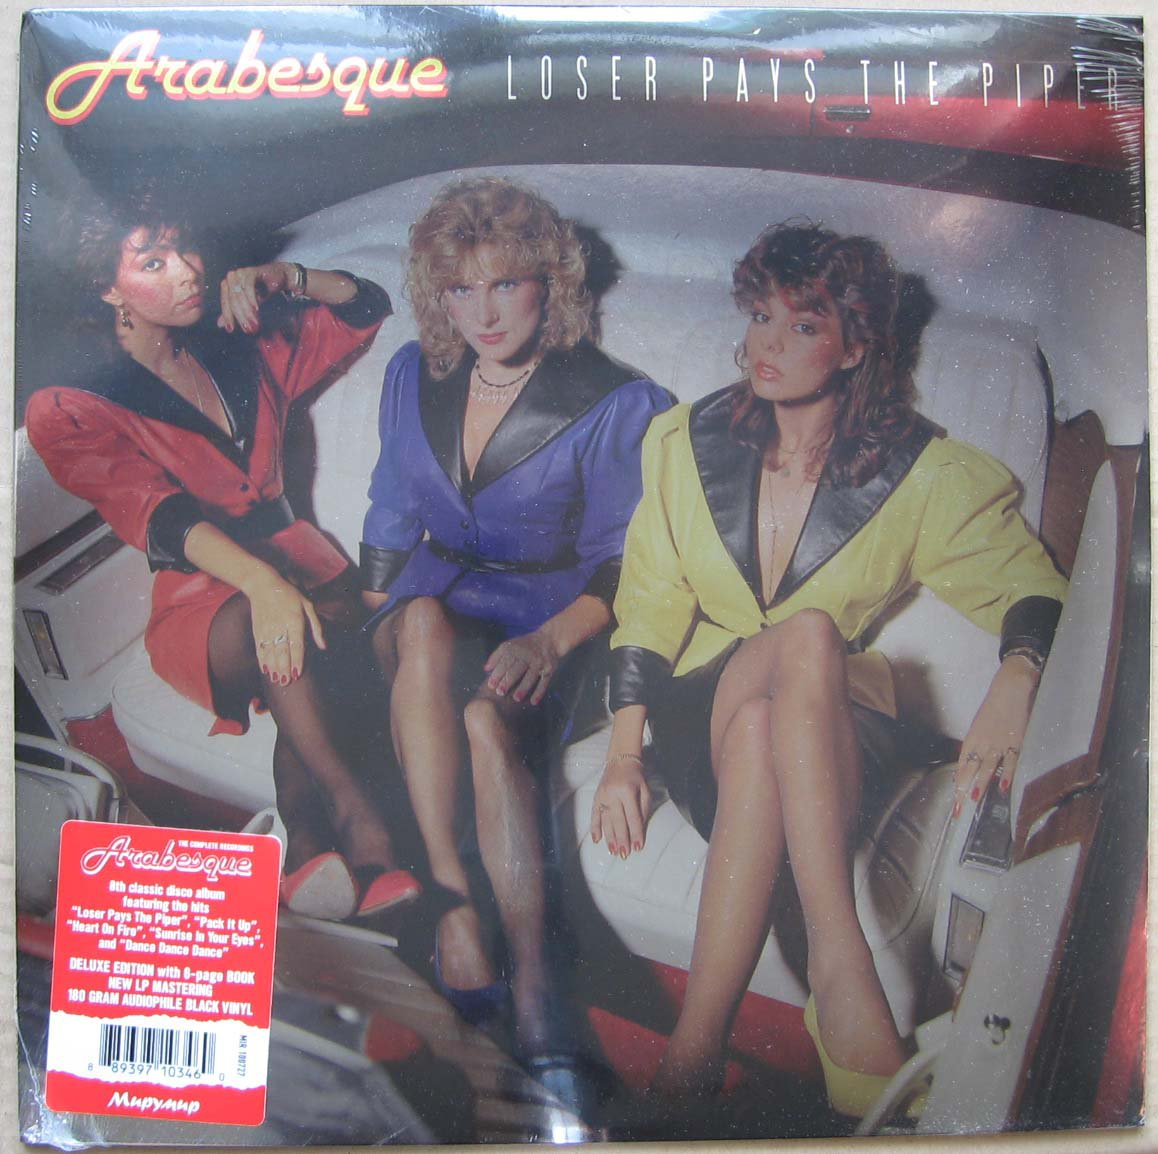 ARABESQUE �VIII Loser Pays The Piper 1983 LP (Deluxe Edition) Russian Edition MiruMir